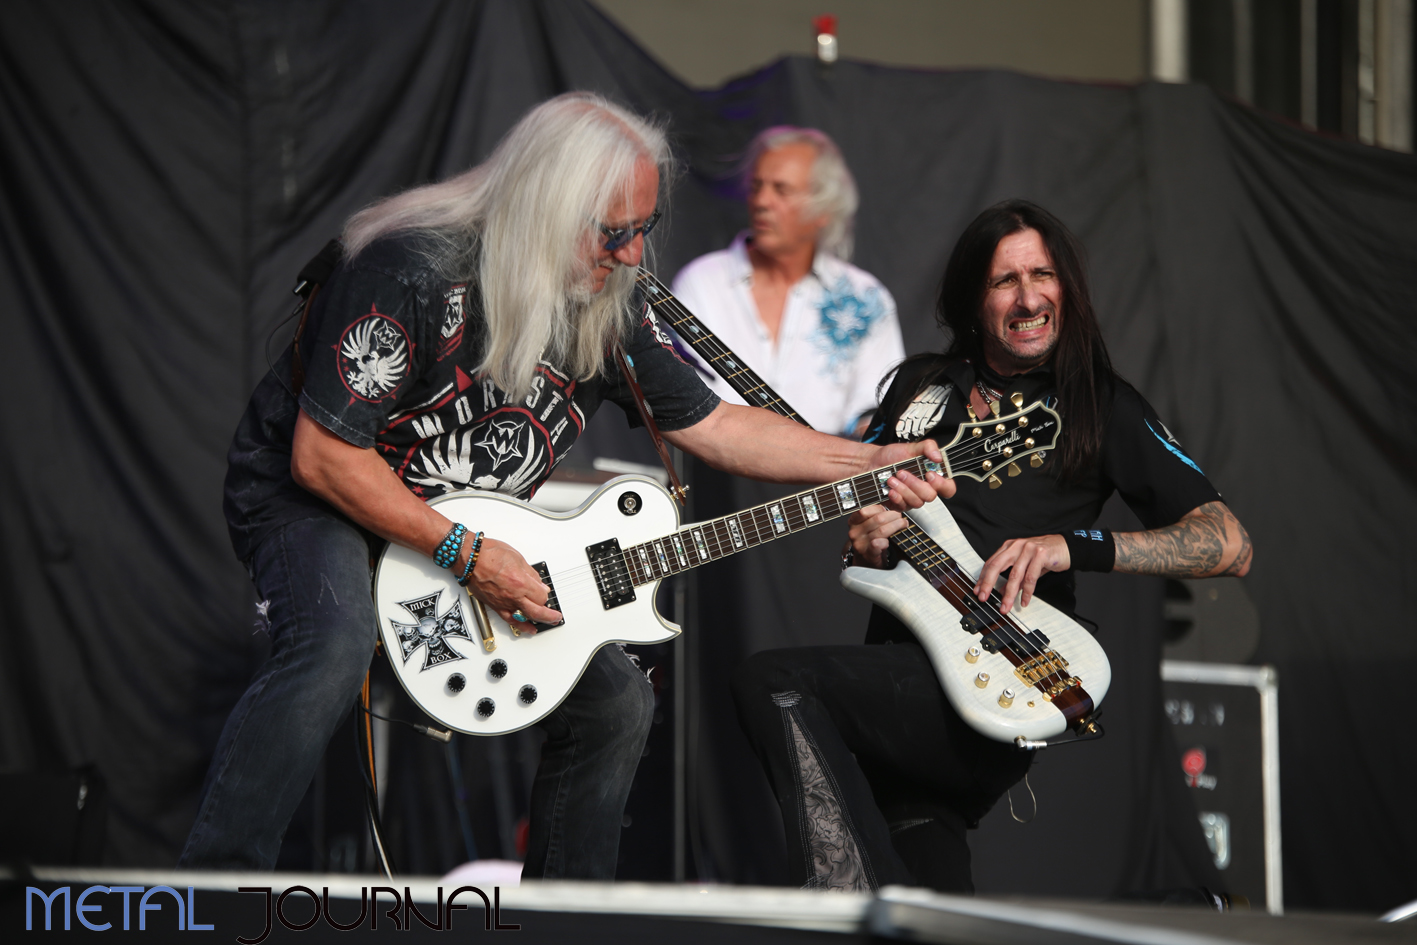 uriah heep rock fest 18 - metal journal pic 6